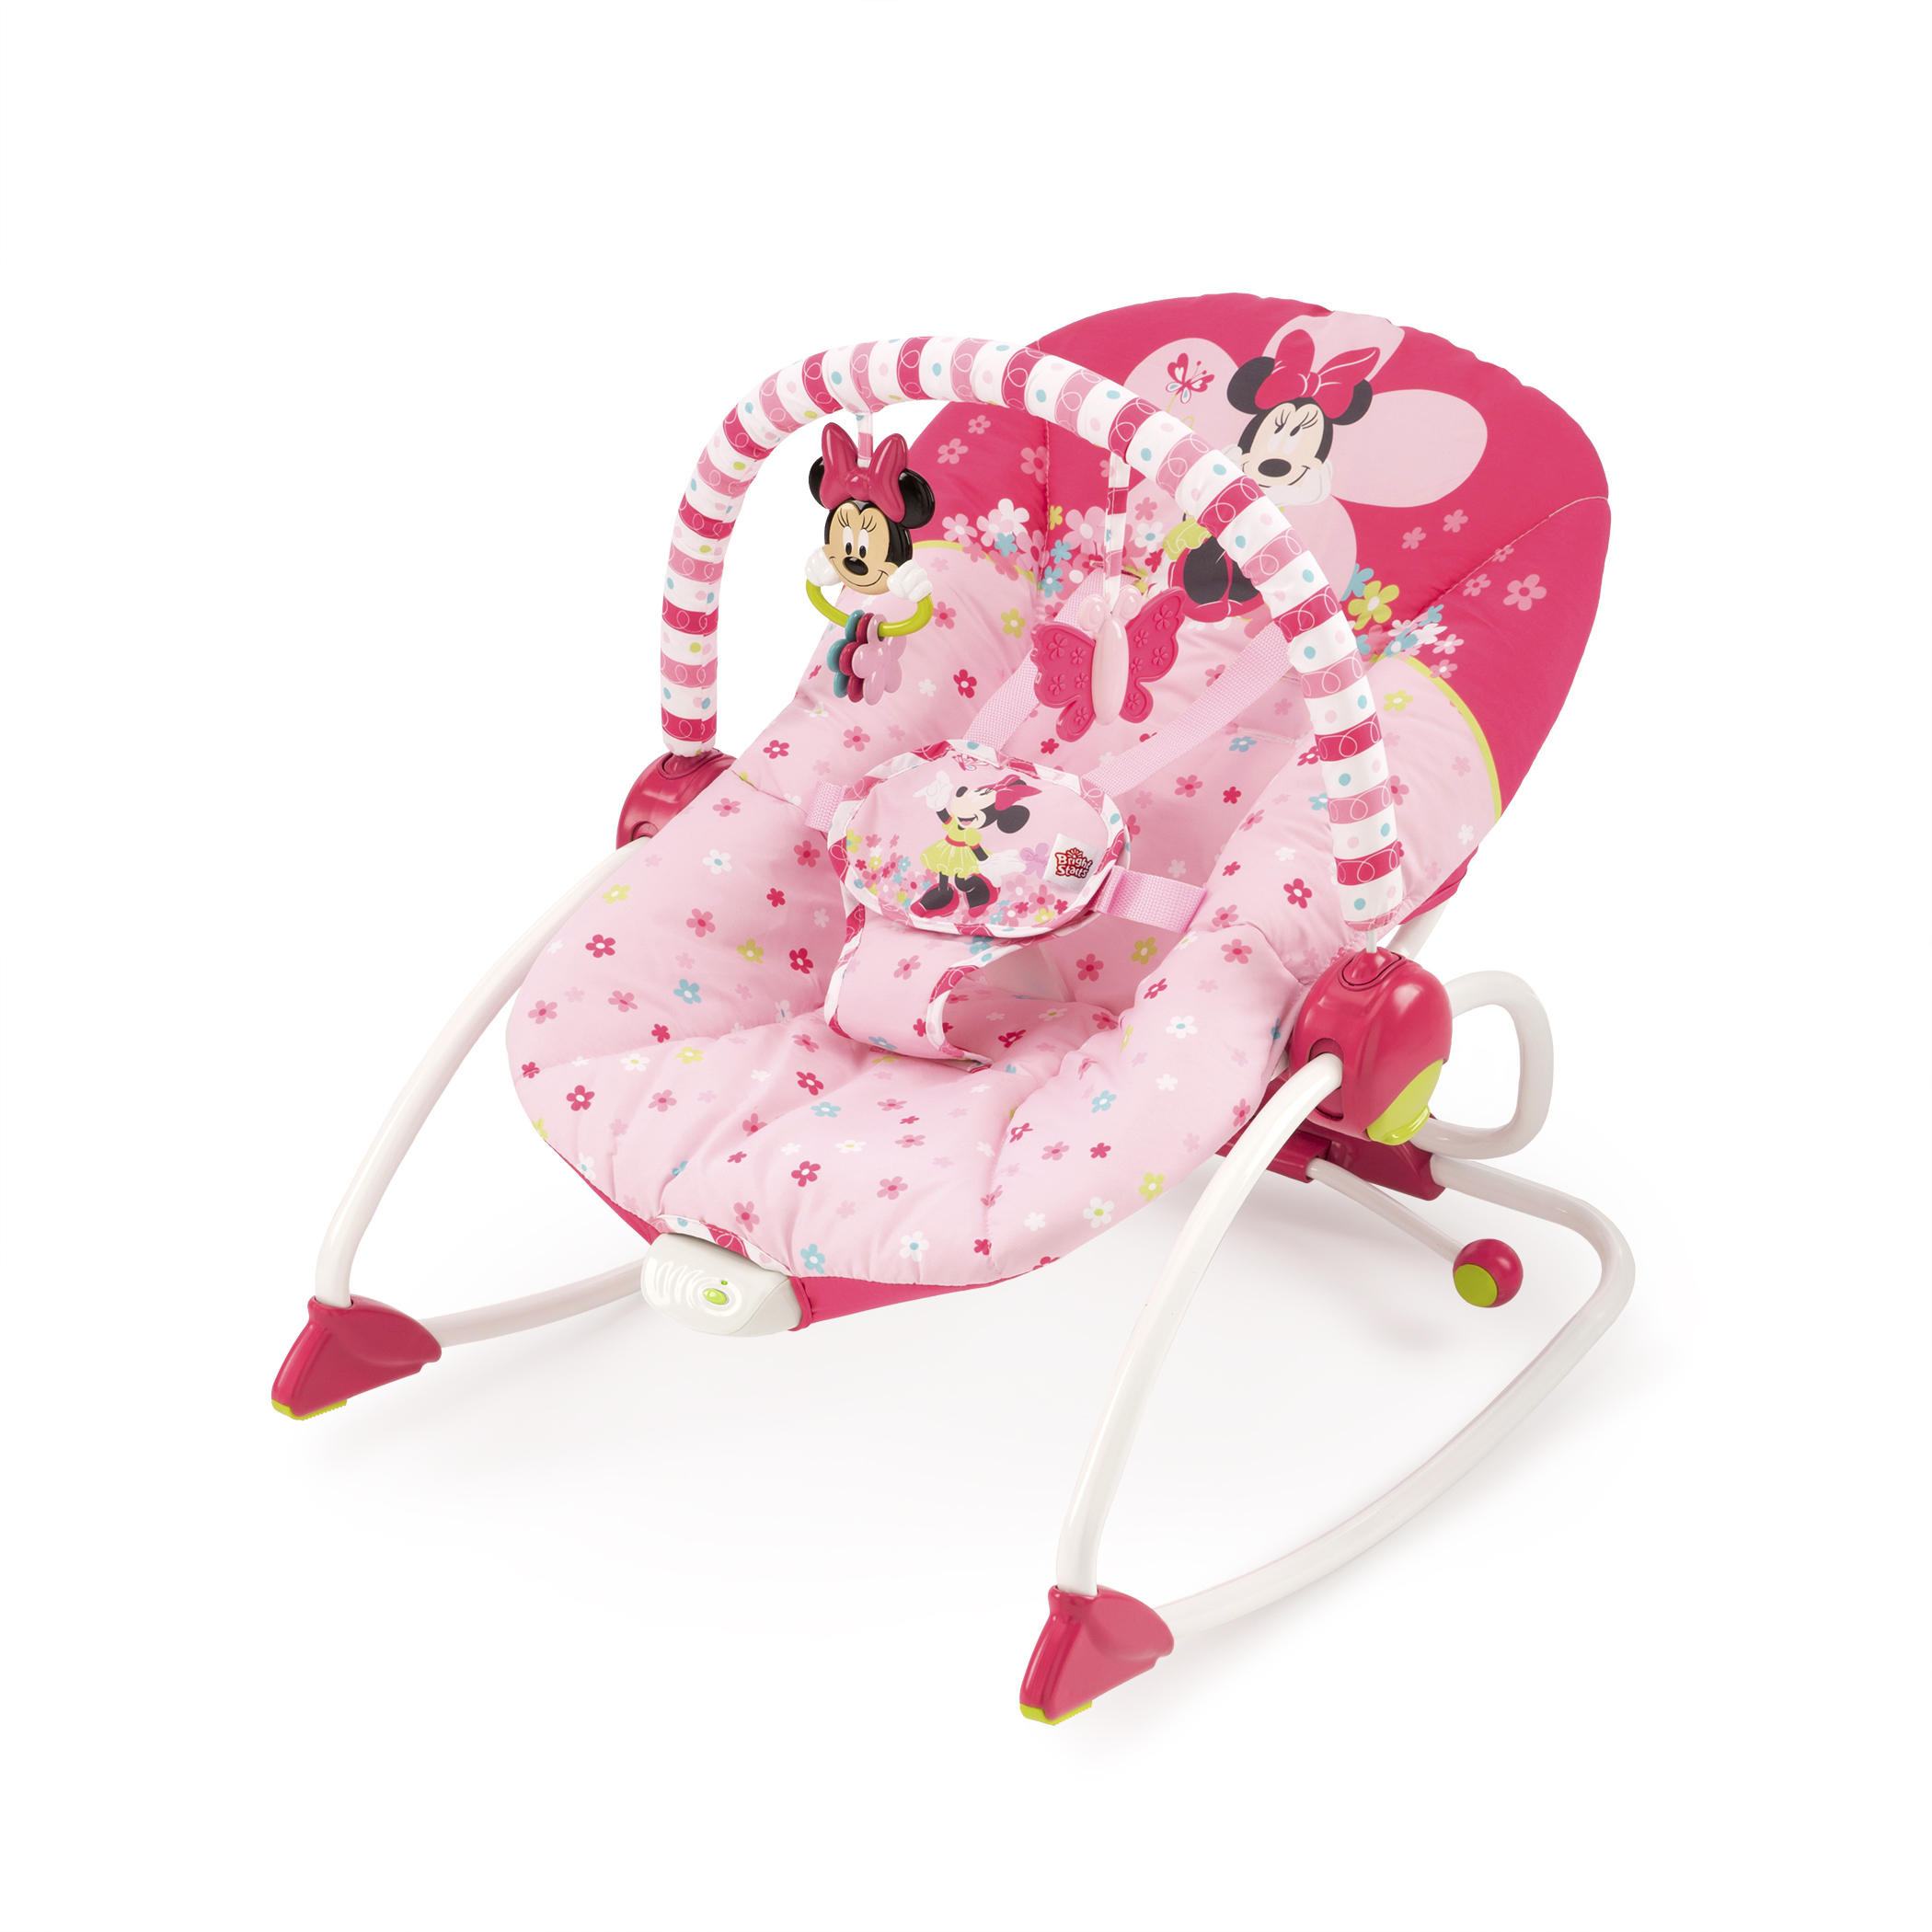 MINNIE MOUSE Baby to Big Kid Rocking Seat